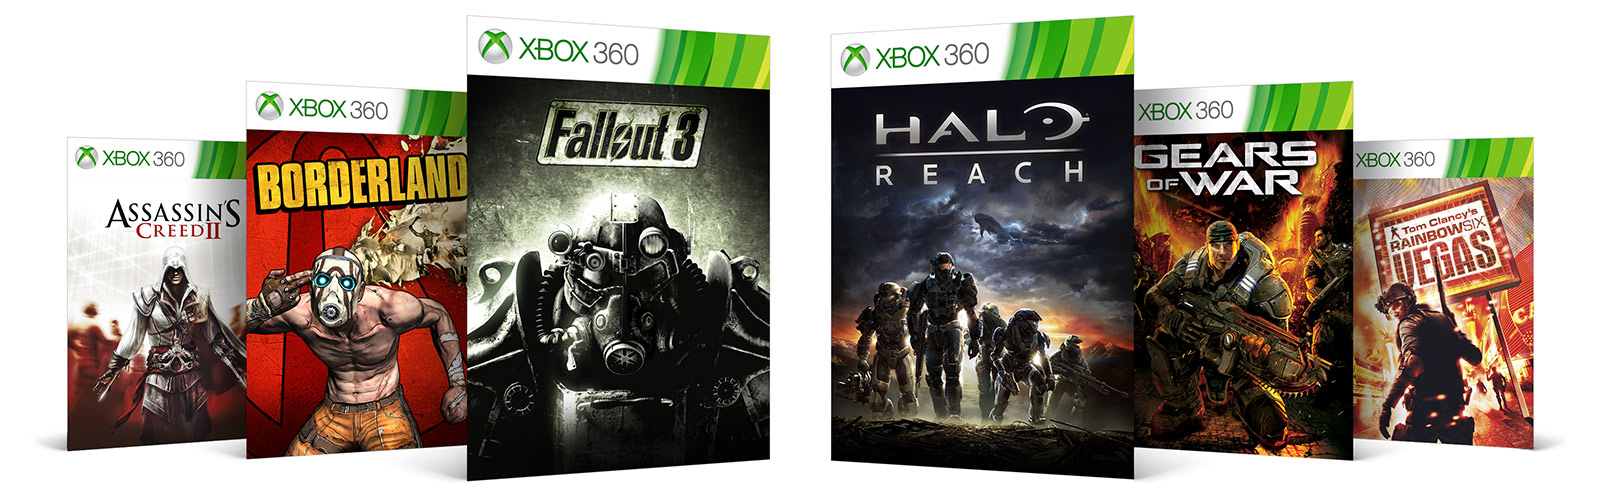 Xbox 360 Games   Xbox Xbox 360 games   Assassins Creed 2 Borderlands Fallout 3 Halo Reach Gears  of War Rainbow